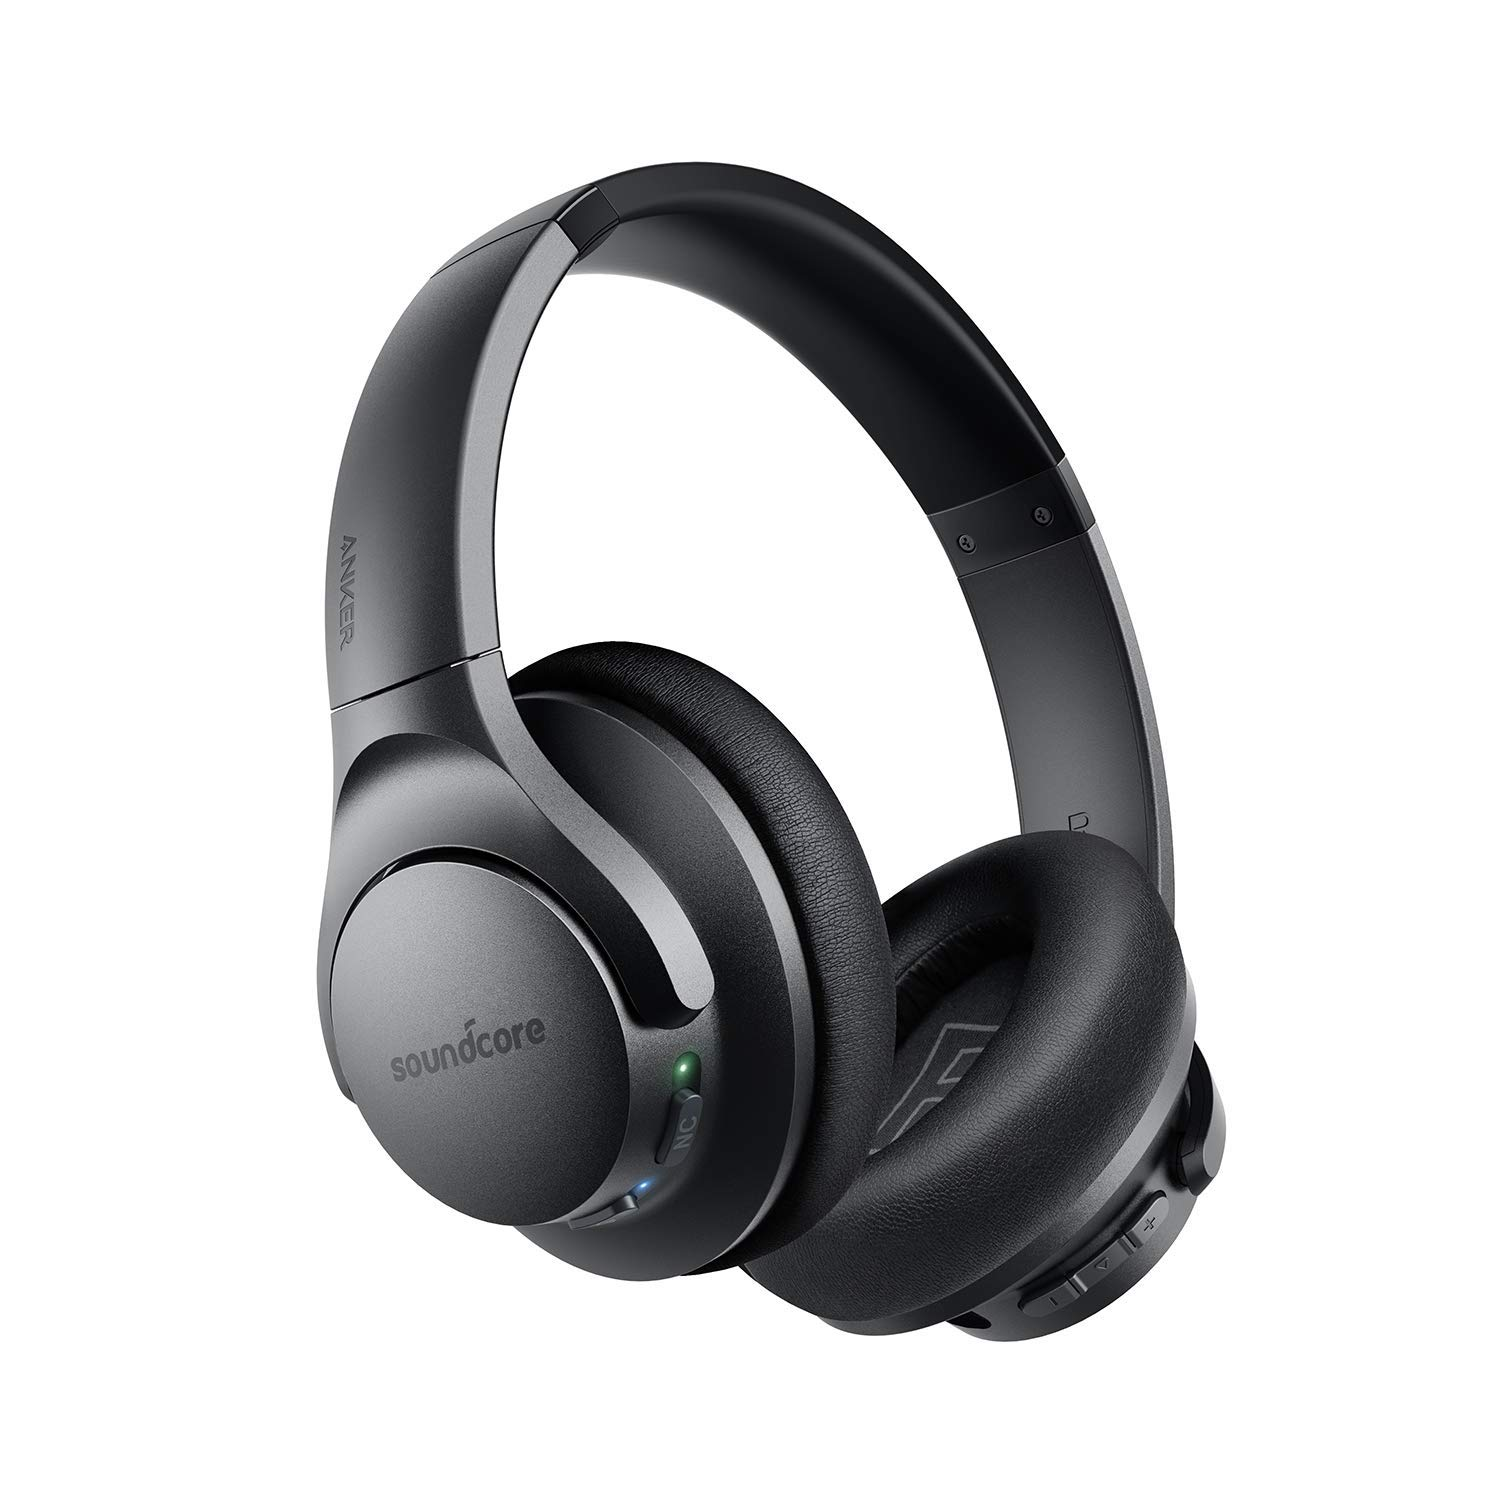 Anker Soundcore Life Q20 Hybrid Active Noise Cancelling Headphones, Wireless Over Ear Bluetooth Headphones with 40H Playtime, Hi-Res Audio, Deep Bass, Memory Foam Ear Cups and Headband for Travel,Work by Soundcore